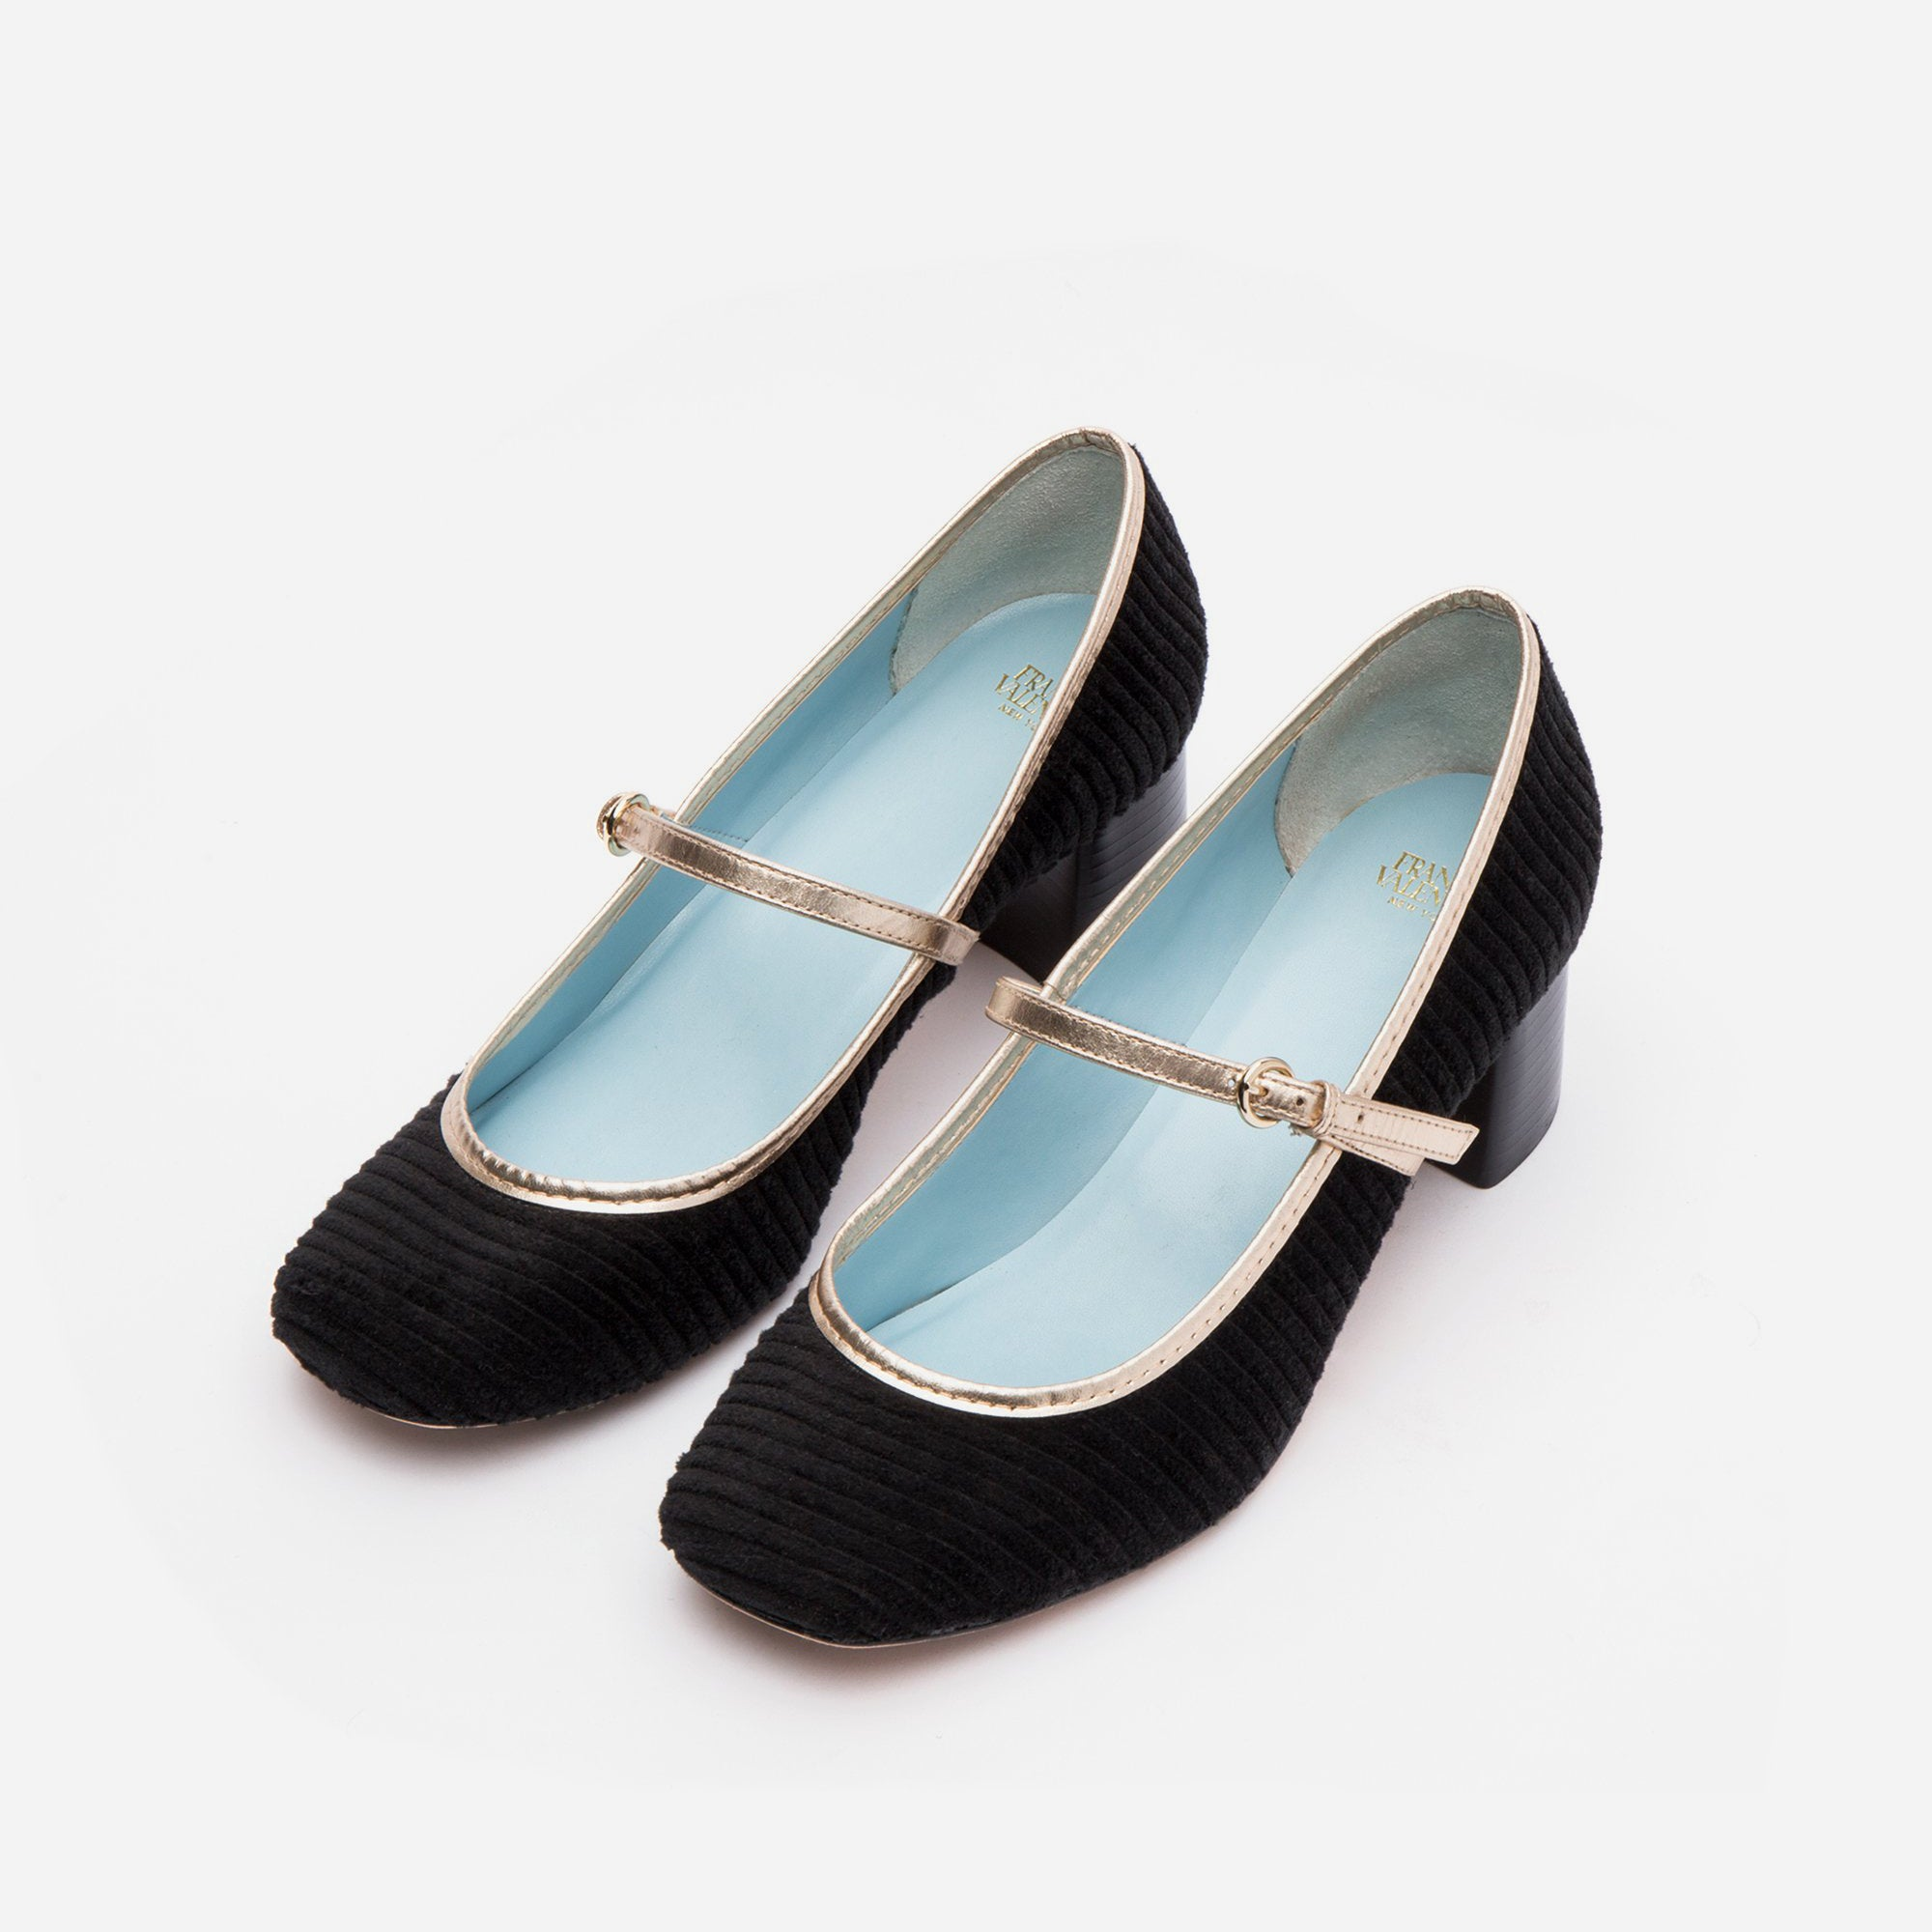 Kat Mary Jane Heels Corduroy Black